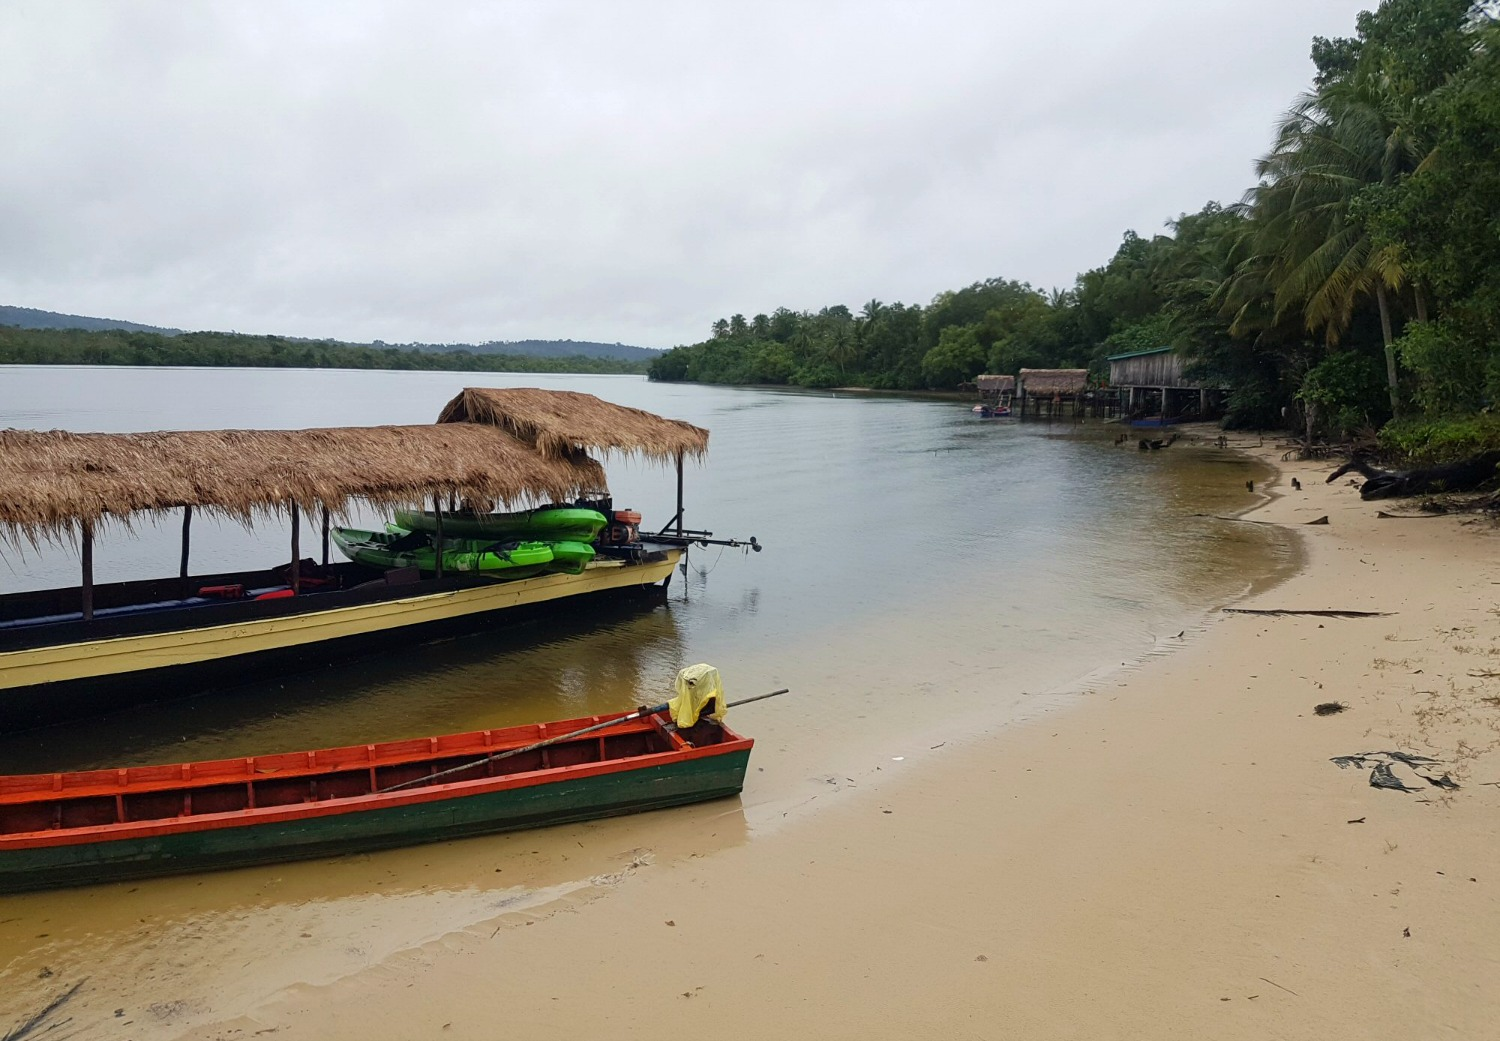 Boat moored at a beach along the river Tatai to explore a local school and village - discovering Cambodia's Cardamom Mountains with kids